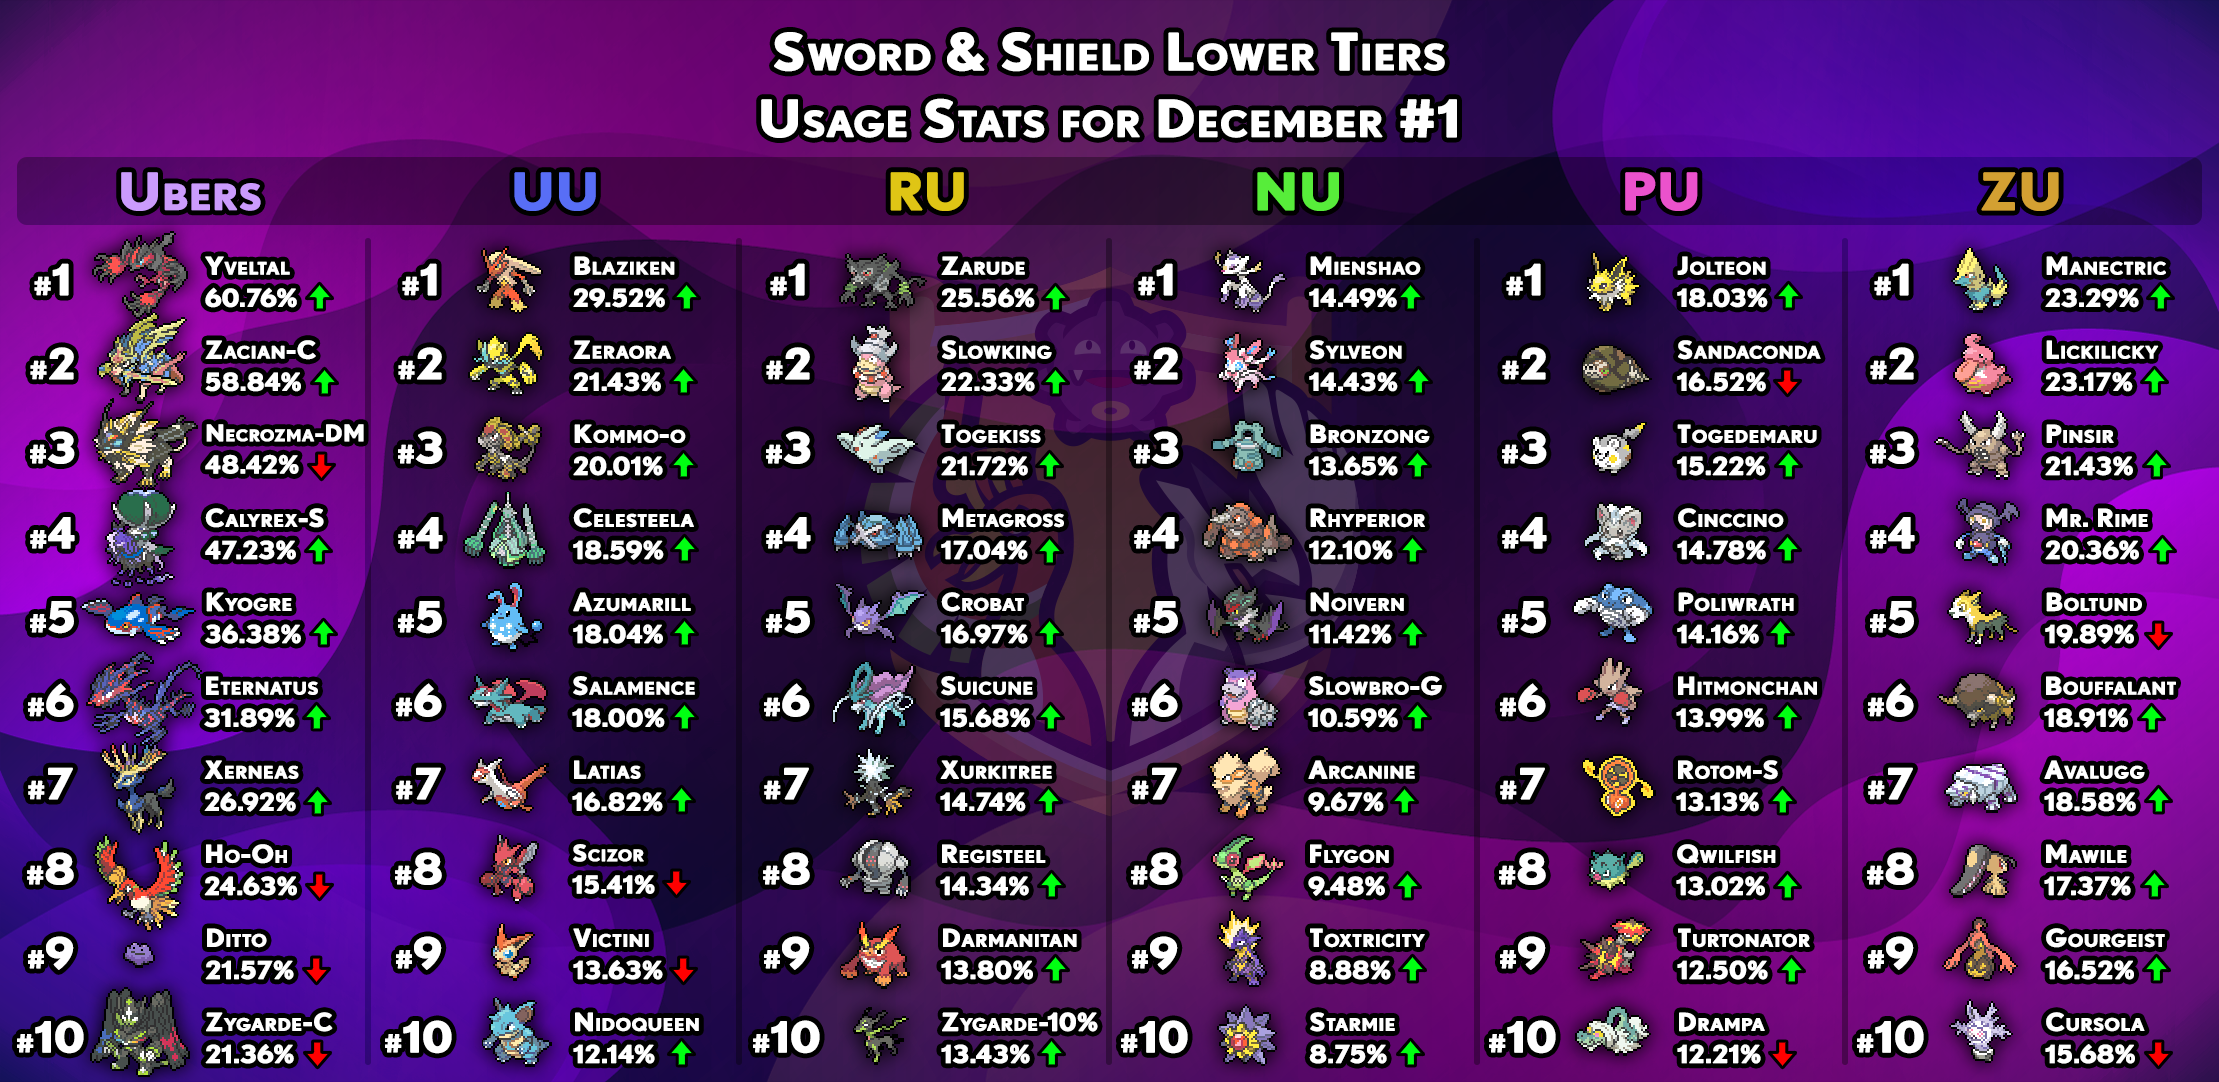 usagestats-gen8-other-tiers-december1.png